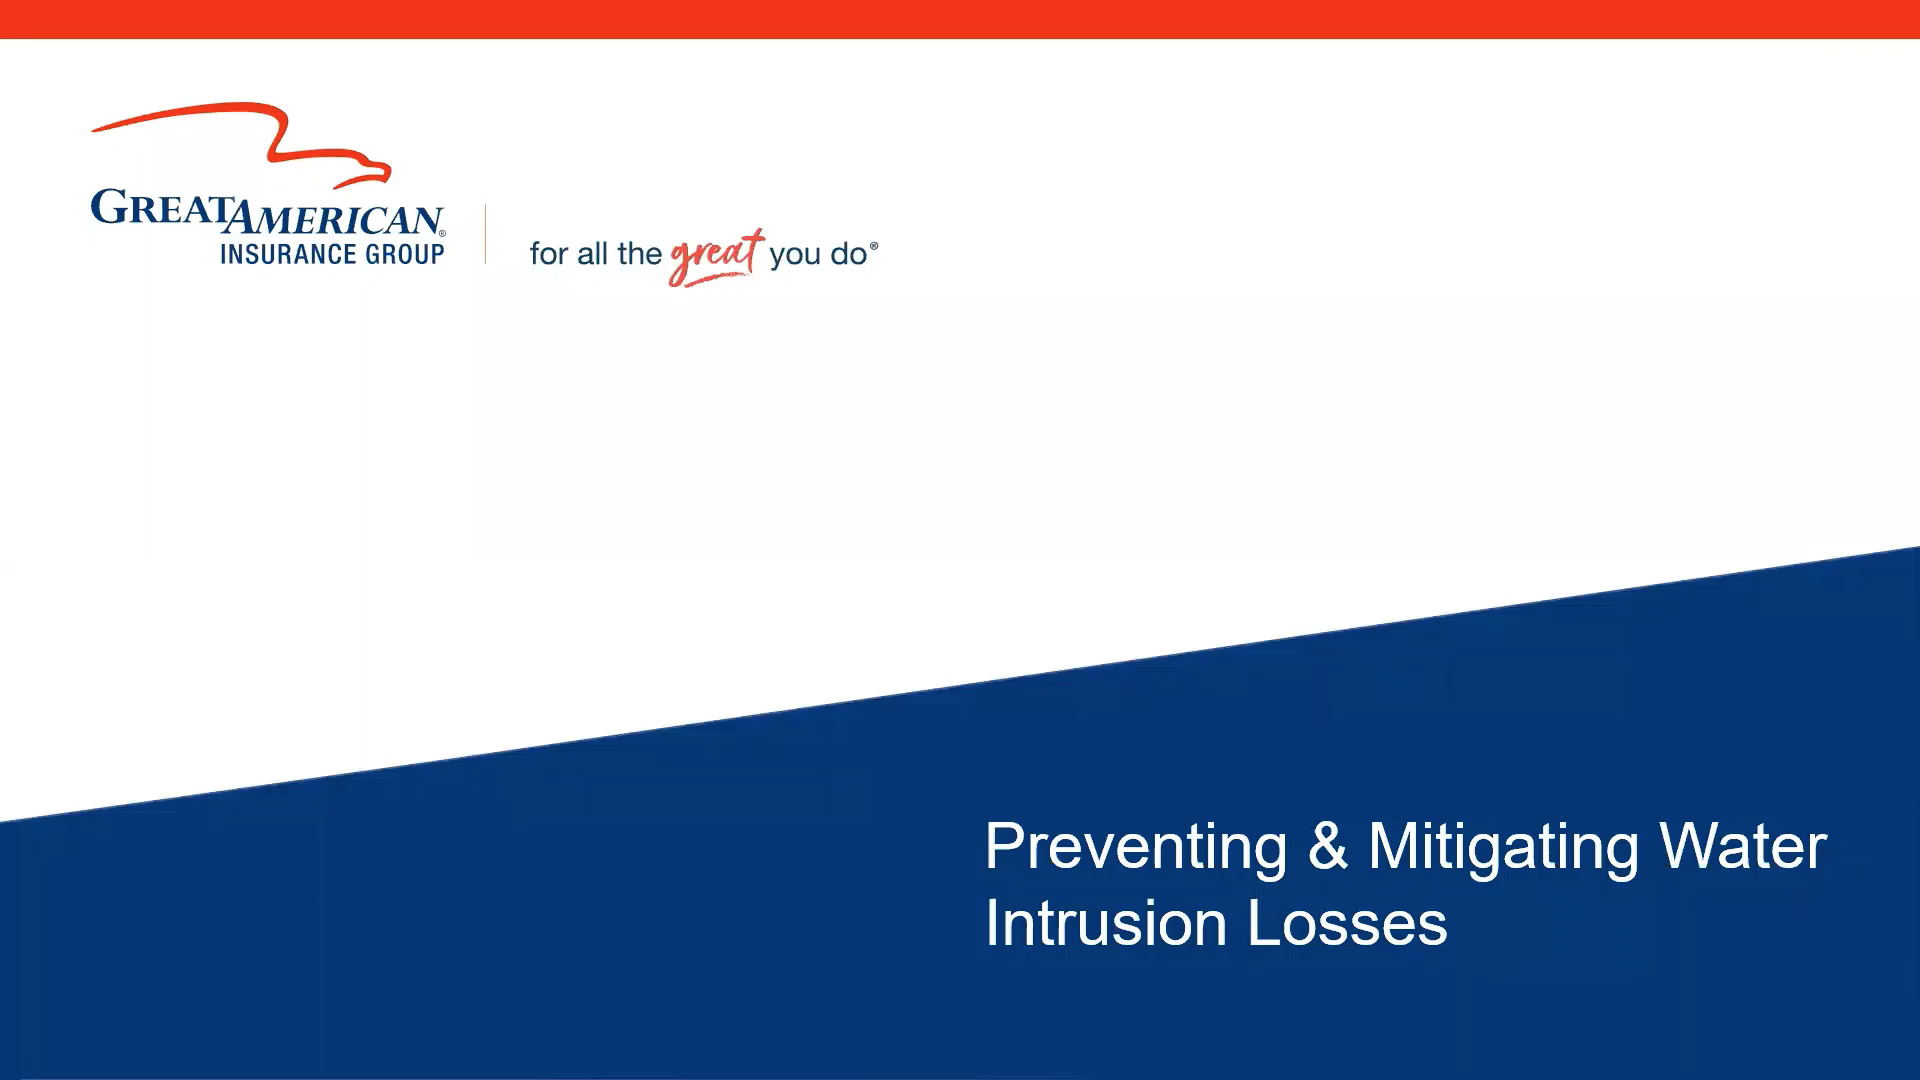 Preventing & Mitigating Water Intrusion Losses webinar